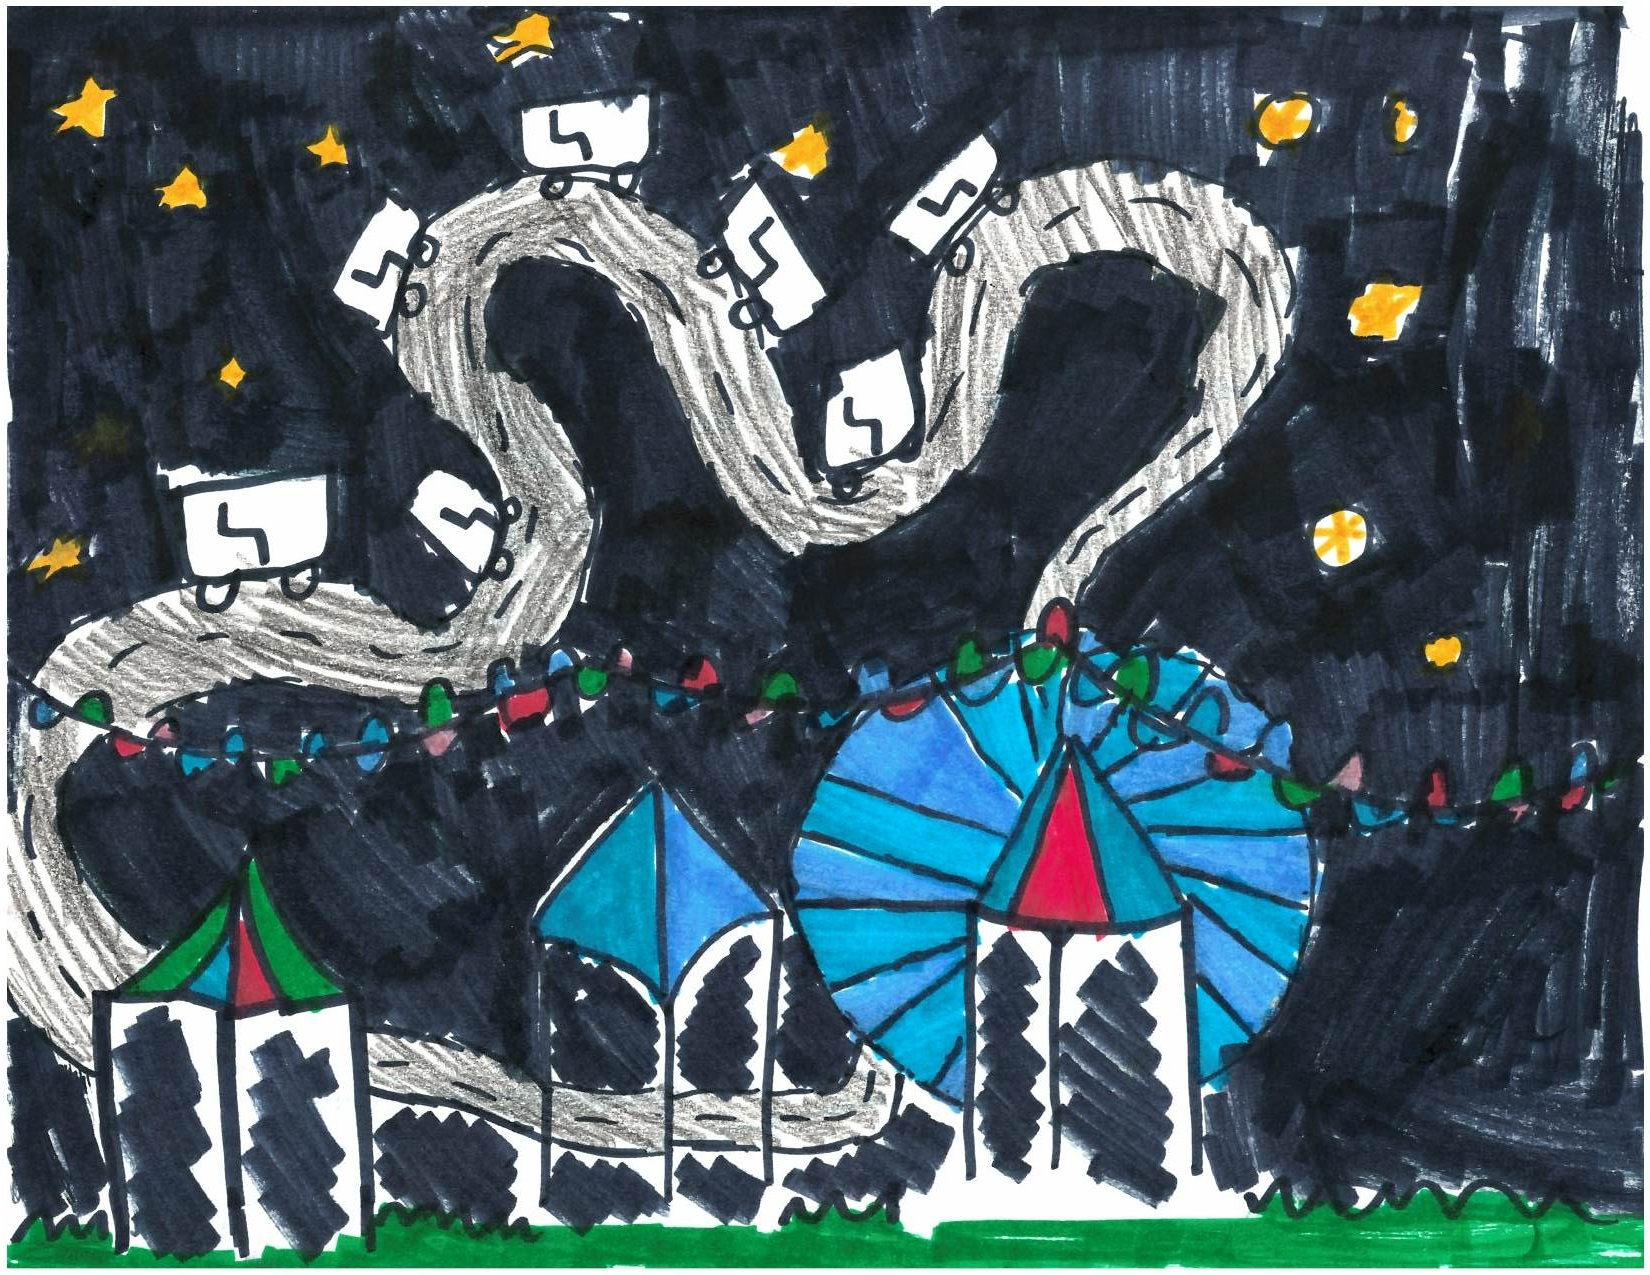 Kiana M., Age 8, gets an honortable mention for 'The Big Carnival', showing the carnival she goes to every summer at the Alameda County Fair where she has a lot of fun with her family.